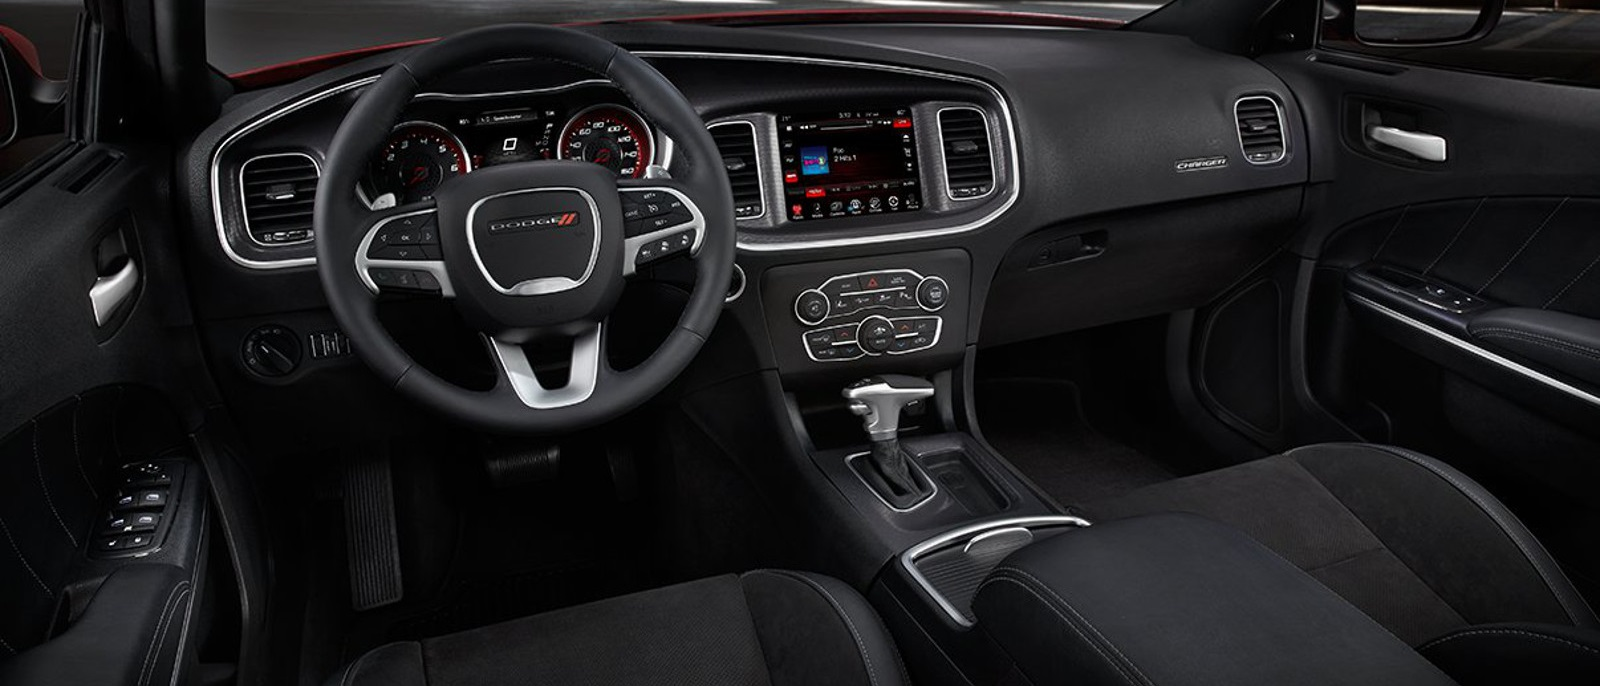 2016-Dodge-Charger-Interior1